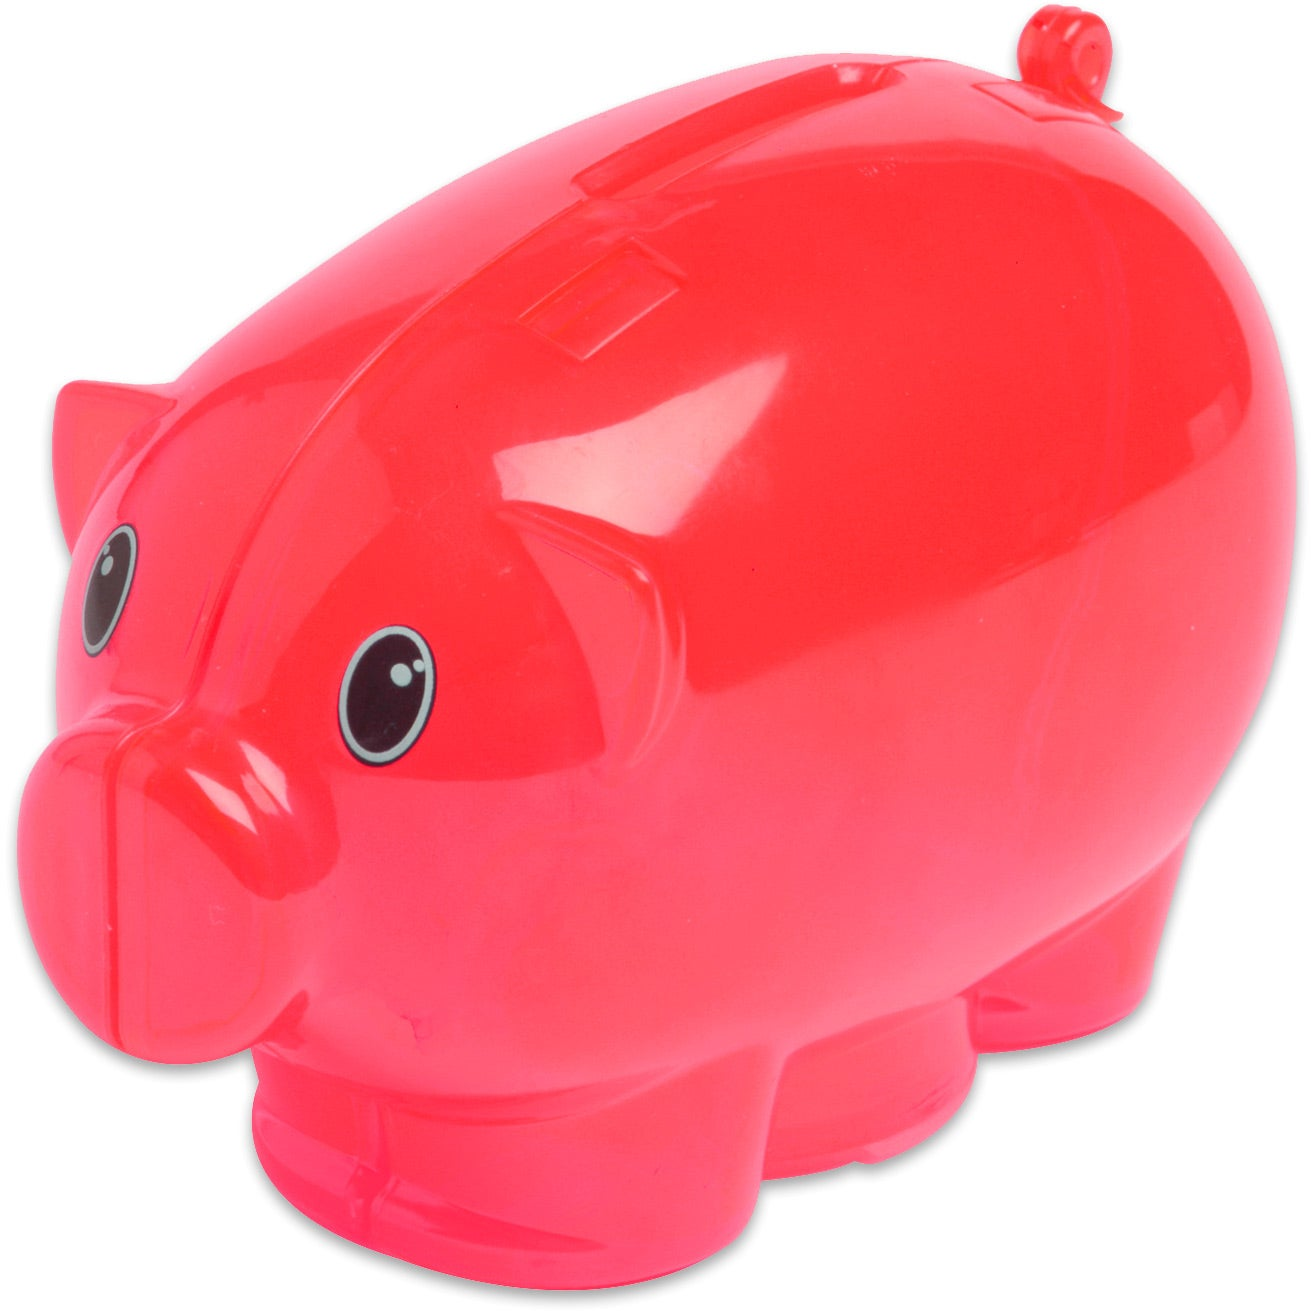 Mini piggy bank custom desktop items ea for Mini piggy banks